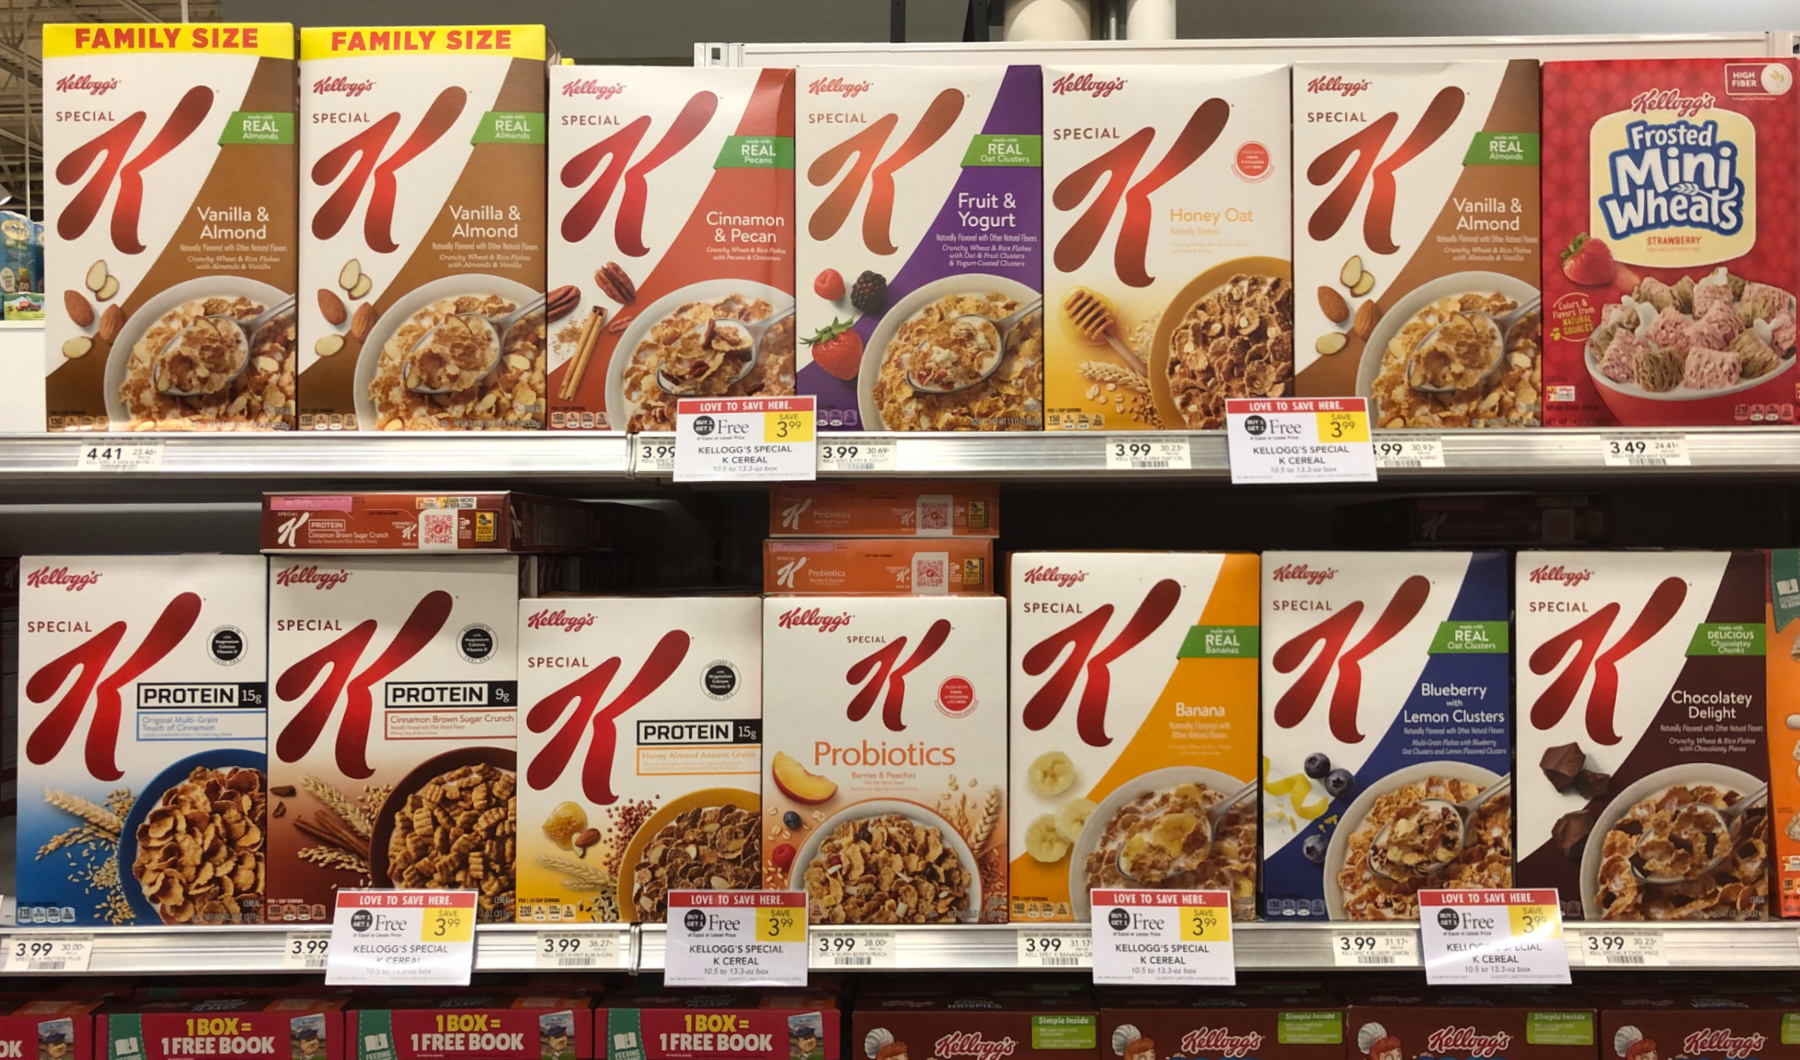 Pick Up Kellogg's® Special K® Cereals During The Publix BOGO Sale (As Low As 90¢) & Sign Up For The Susan G. Komen Miami/Fort Lauderdale Virtual More Thank Pink Walk on I Heart Publix 1